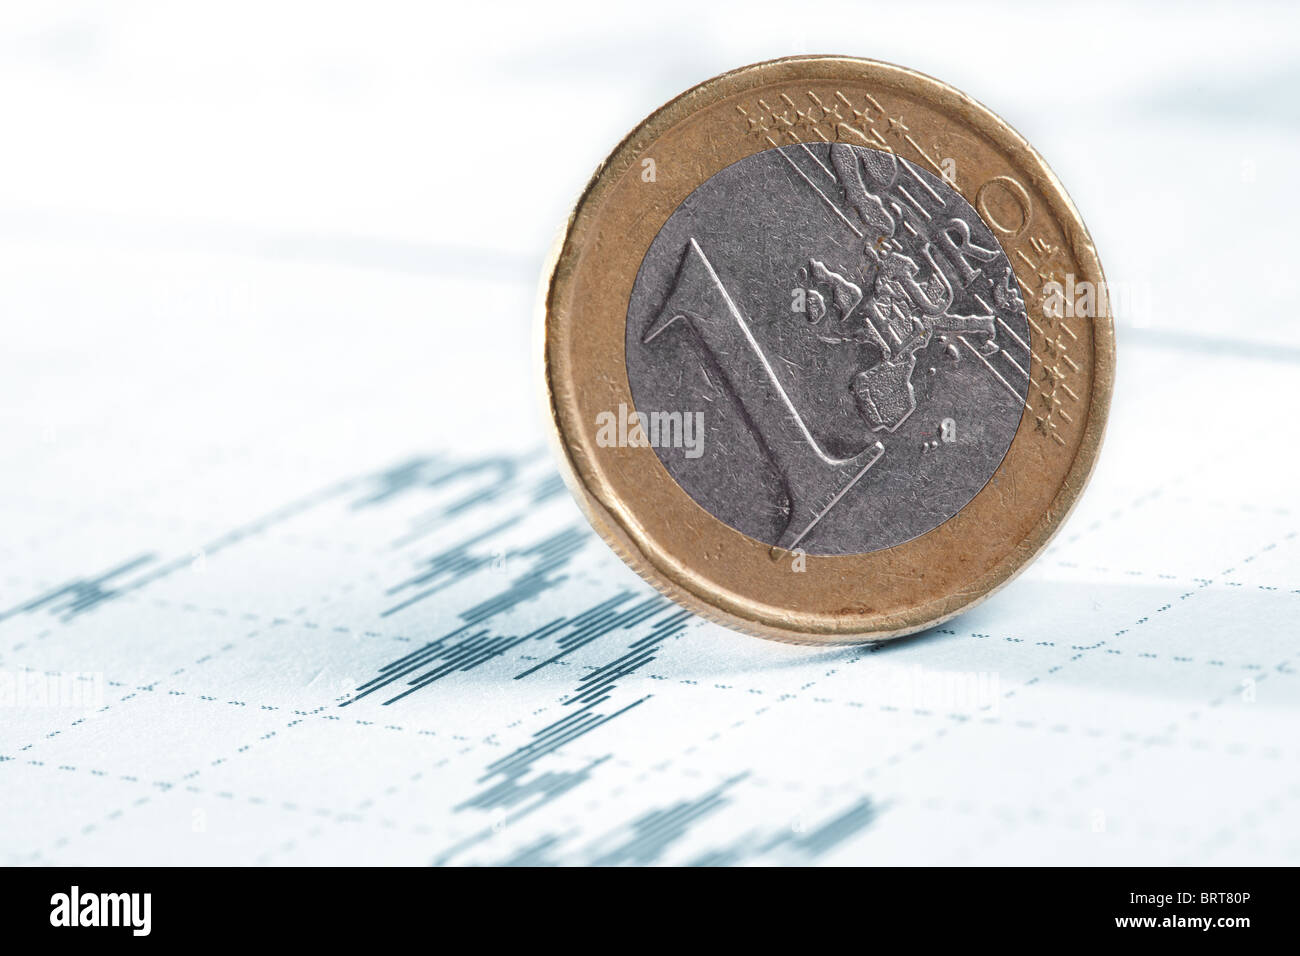 Business diagram on financial report with coins - Stock Image